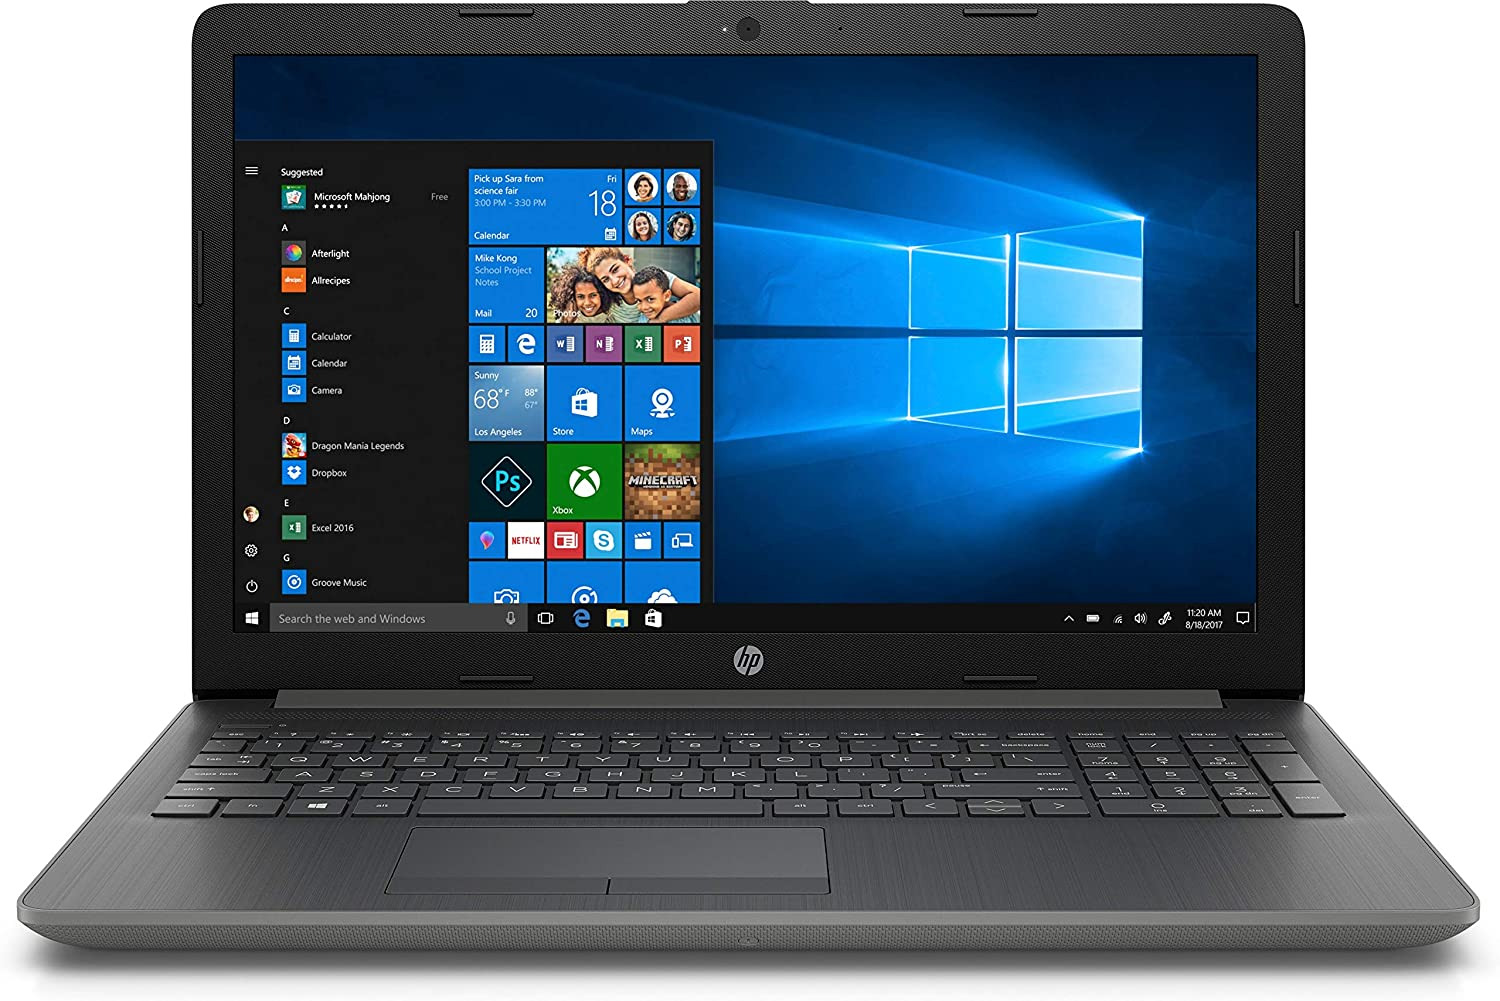 HP Touchscreen Laptop PC Intel Core 8GB Limited time sale 1TB DDR4 HDD i3-7100U OFFicial store